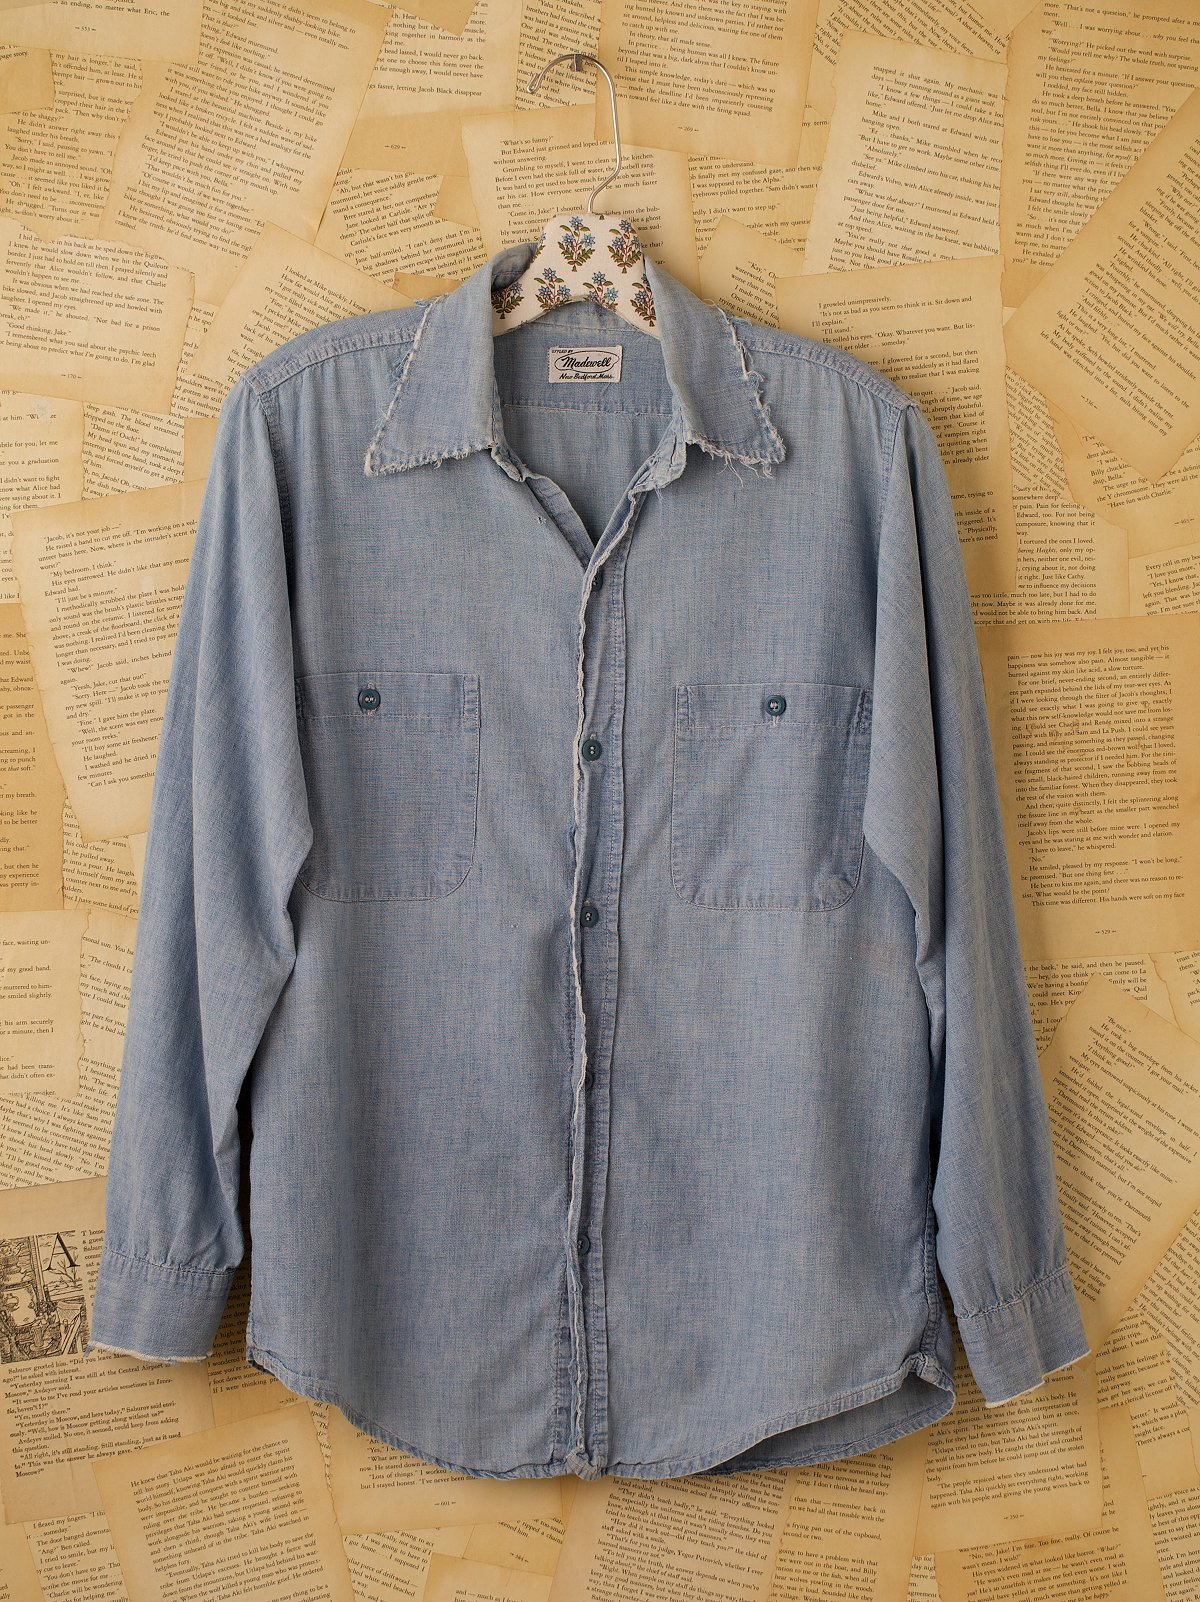 Vintage Denim Chambry Shirt